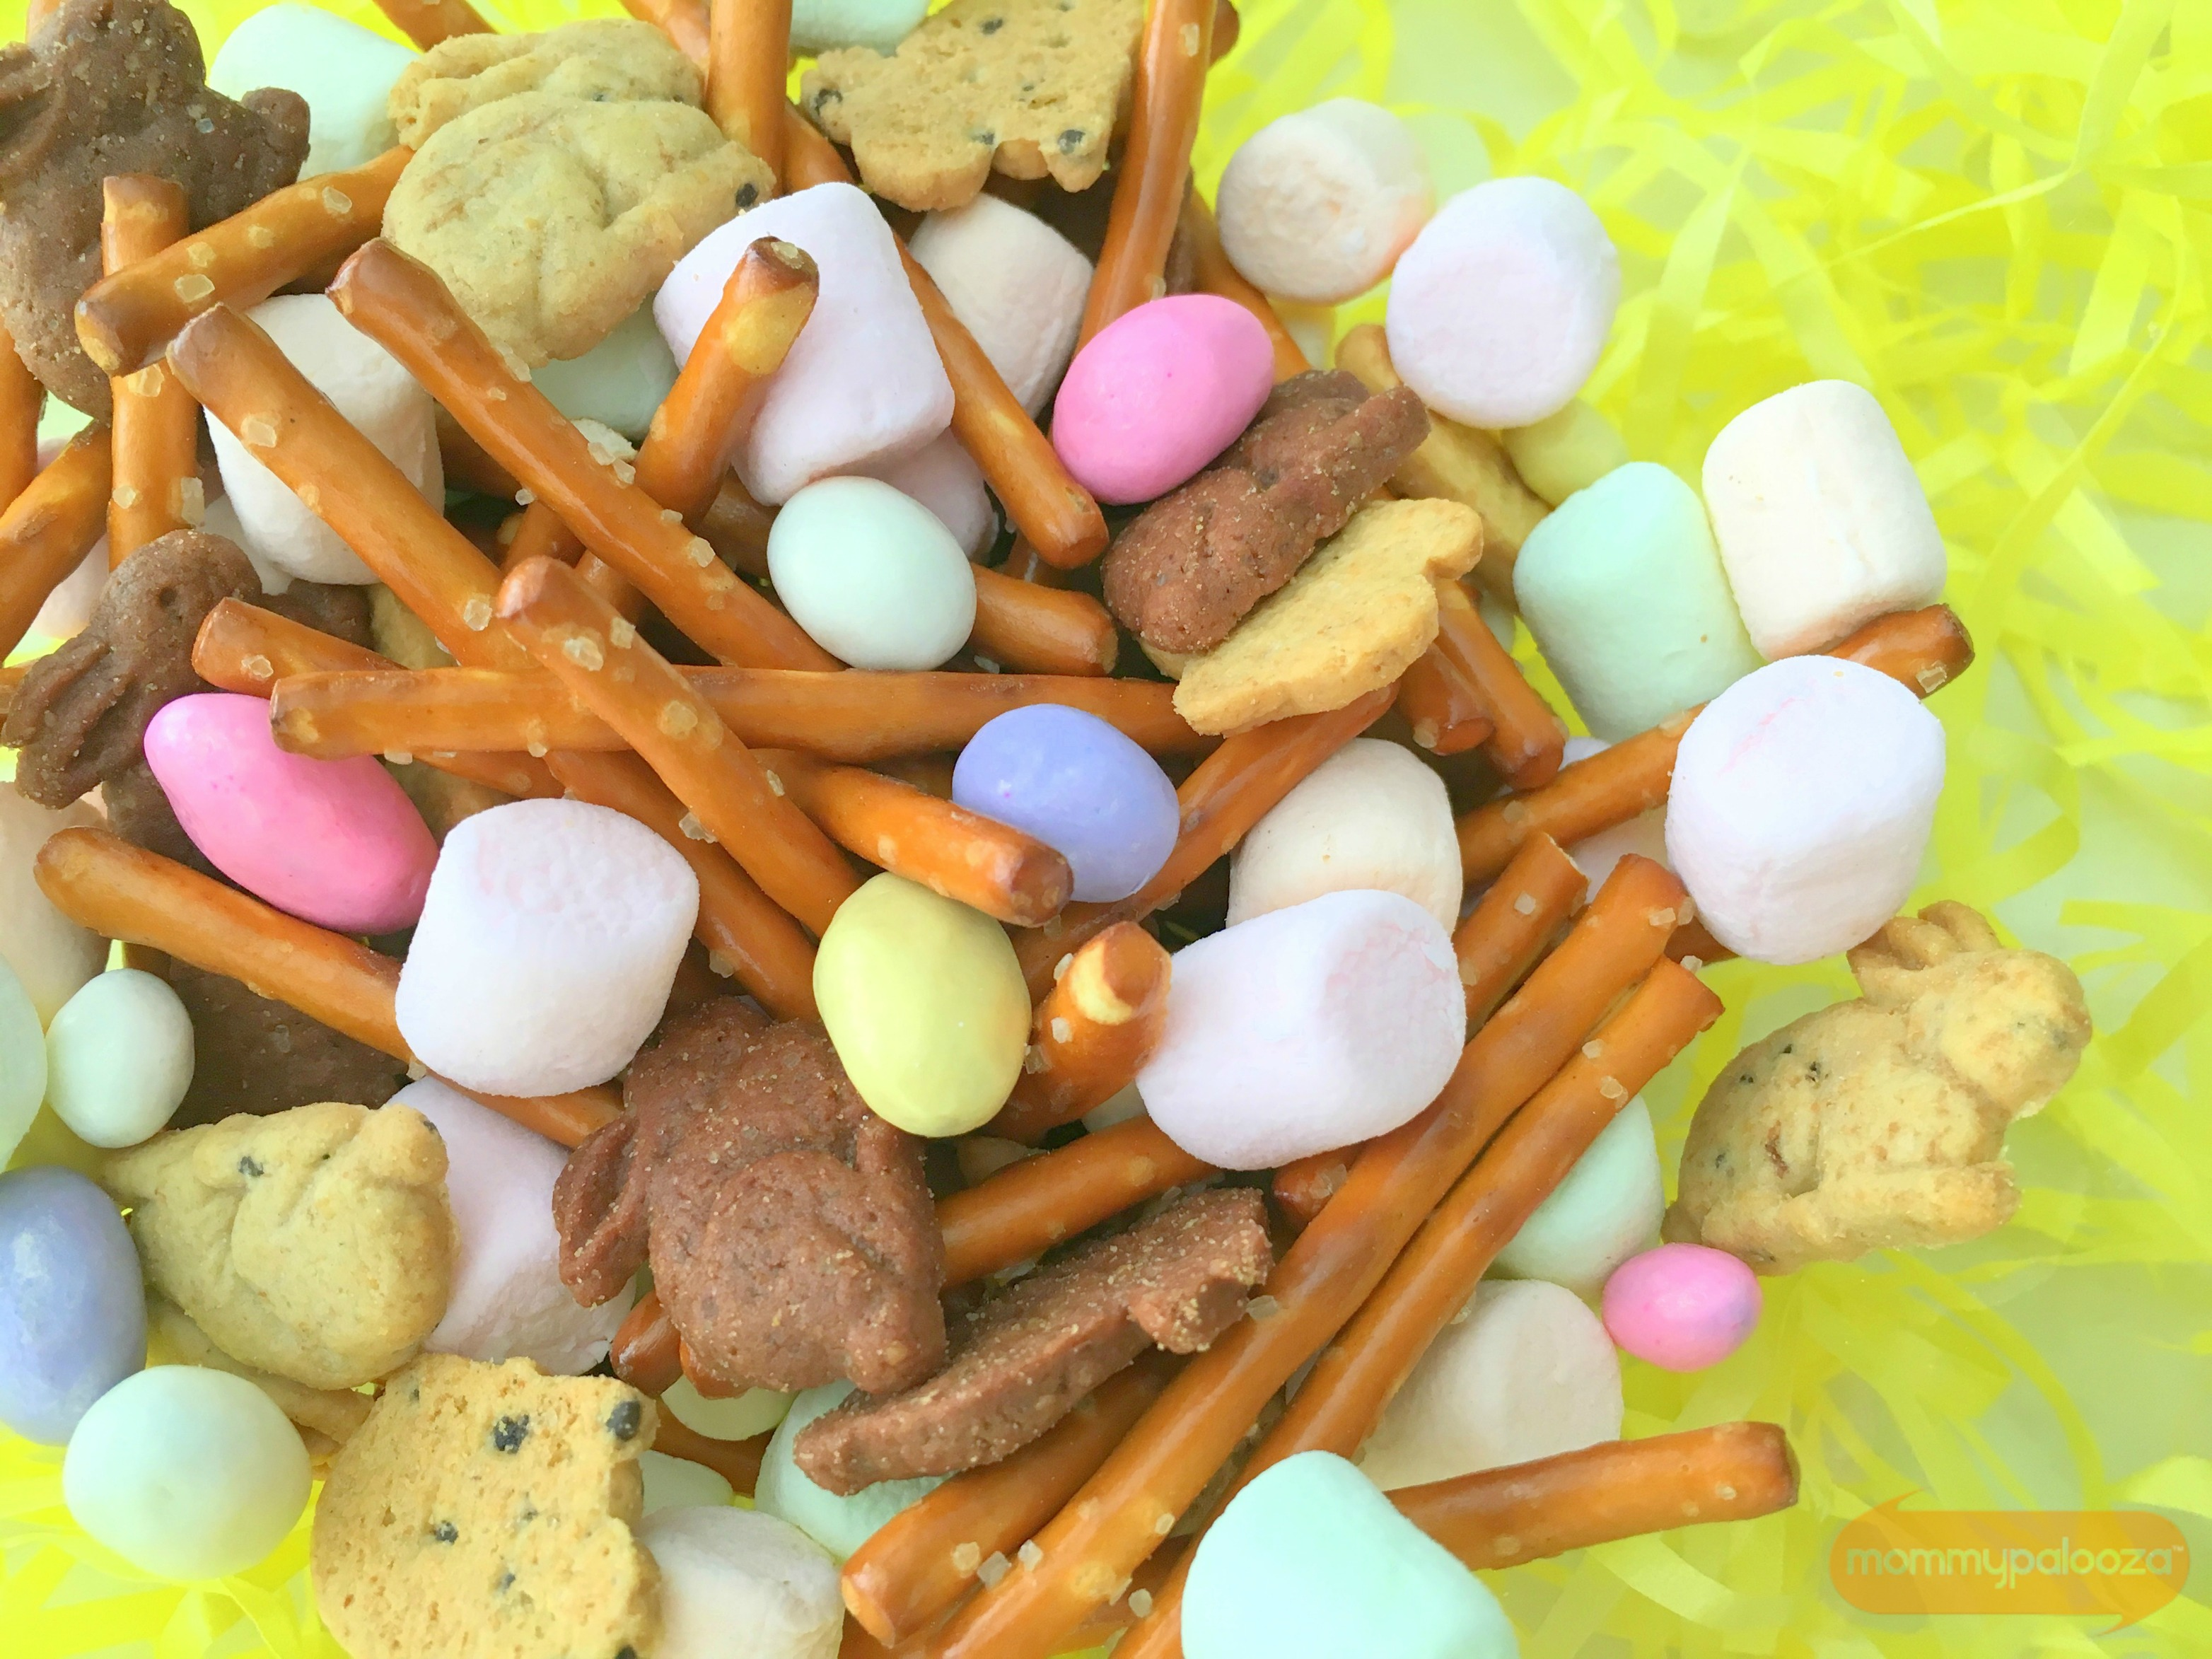 This is a fun and easy snack idea for kids that is Easter and spring themed. Sweet, salty, and tasty! The rainbow marshmallows make it extra special!